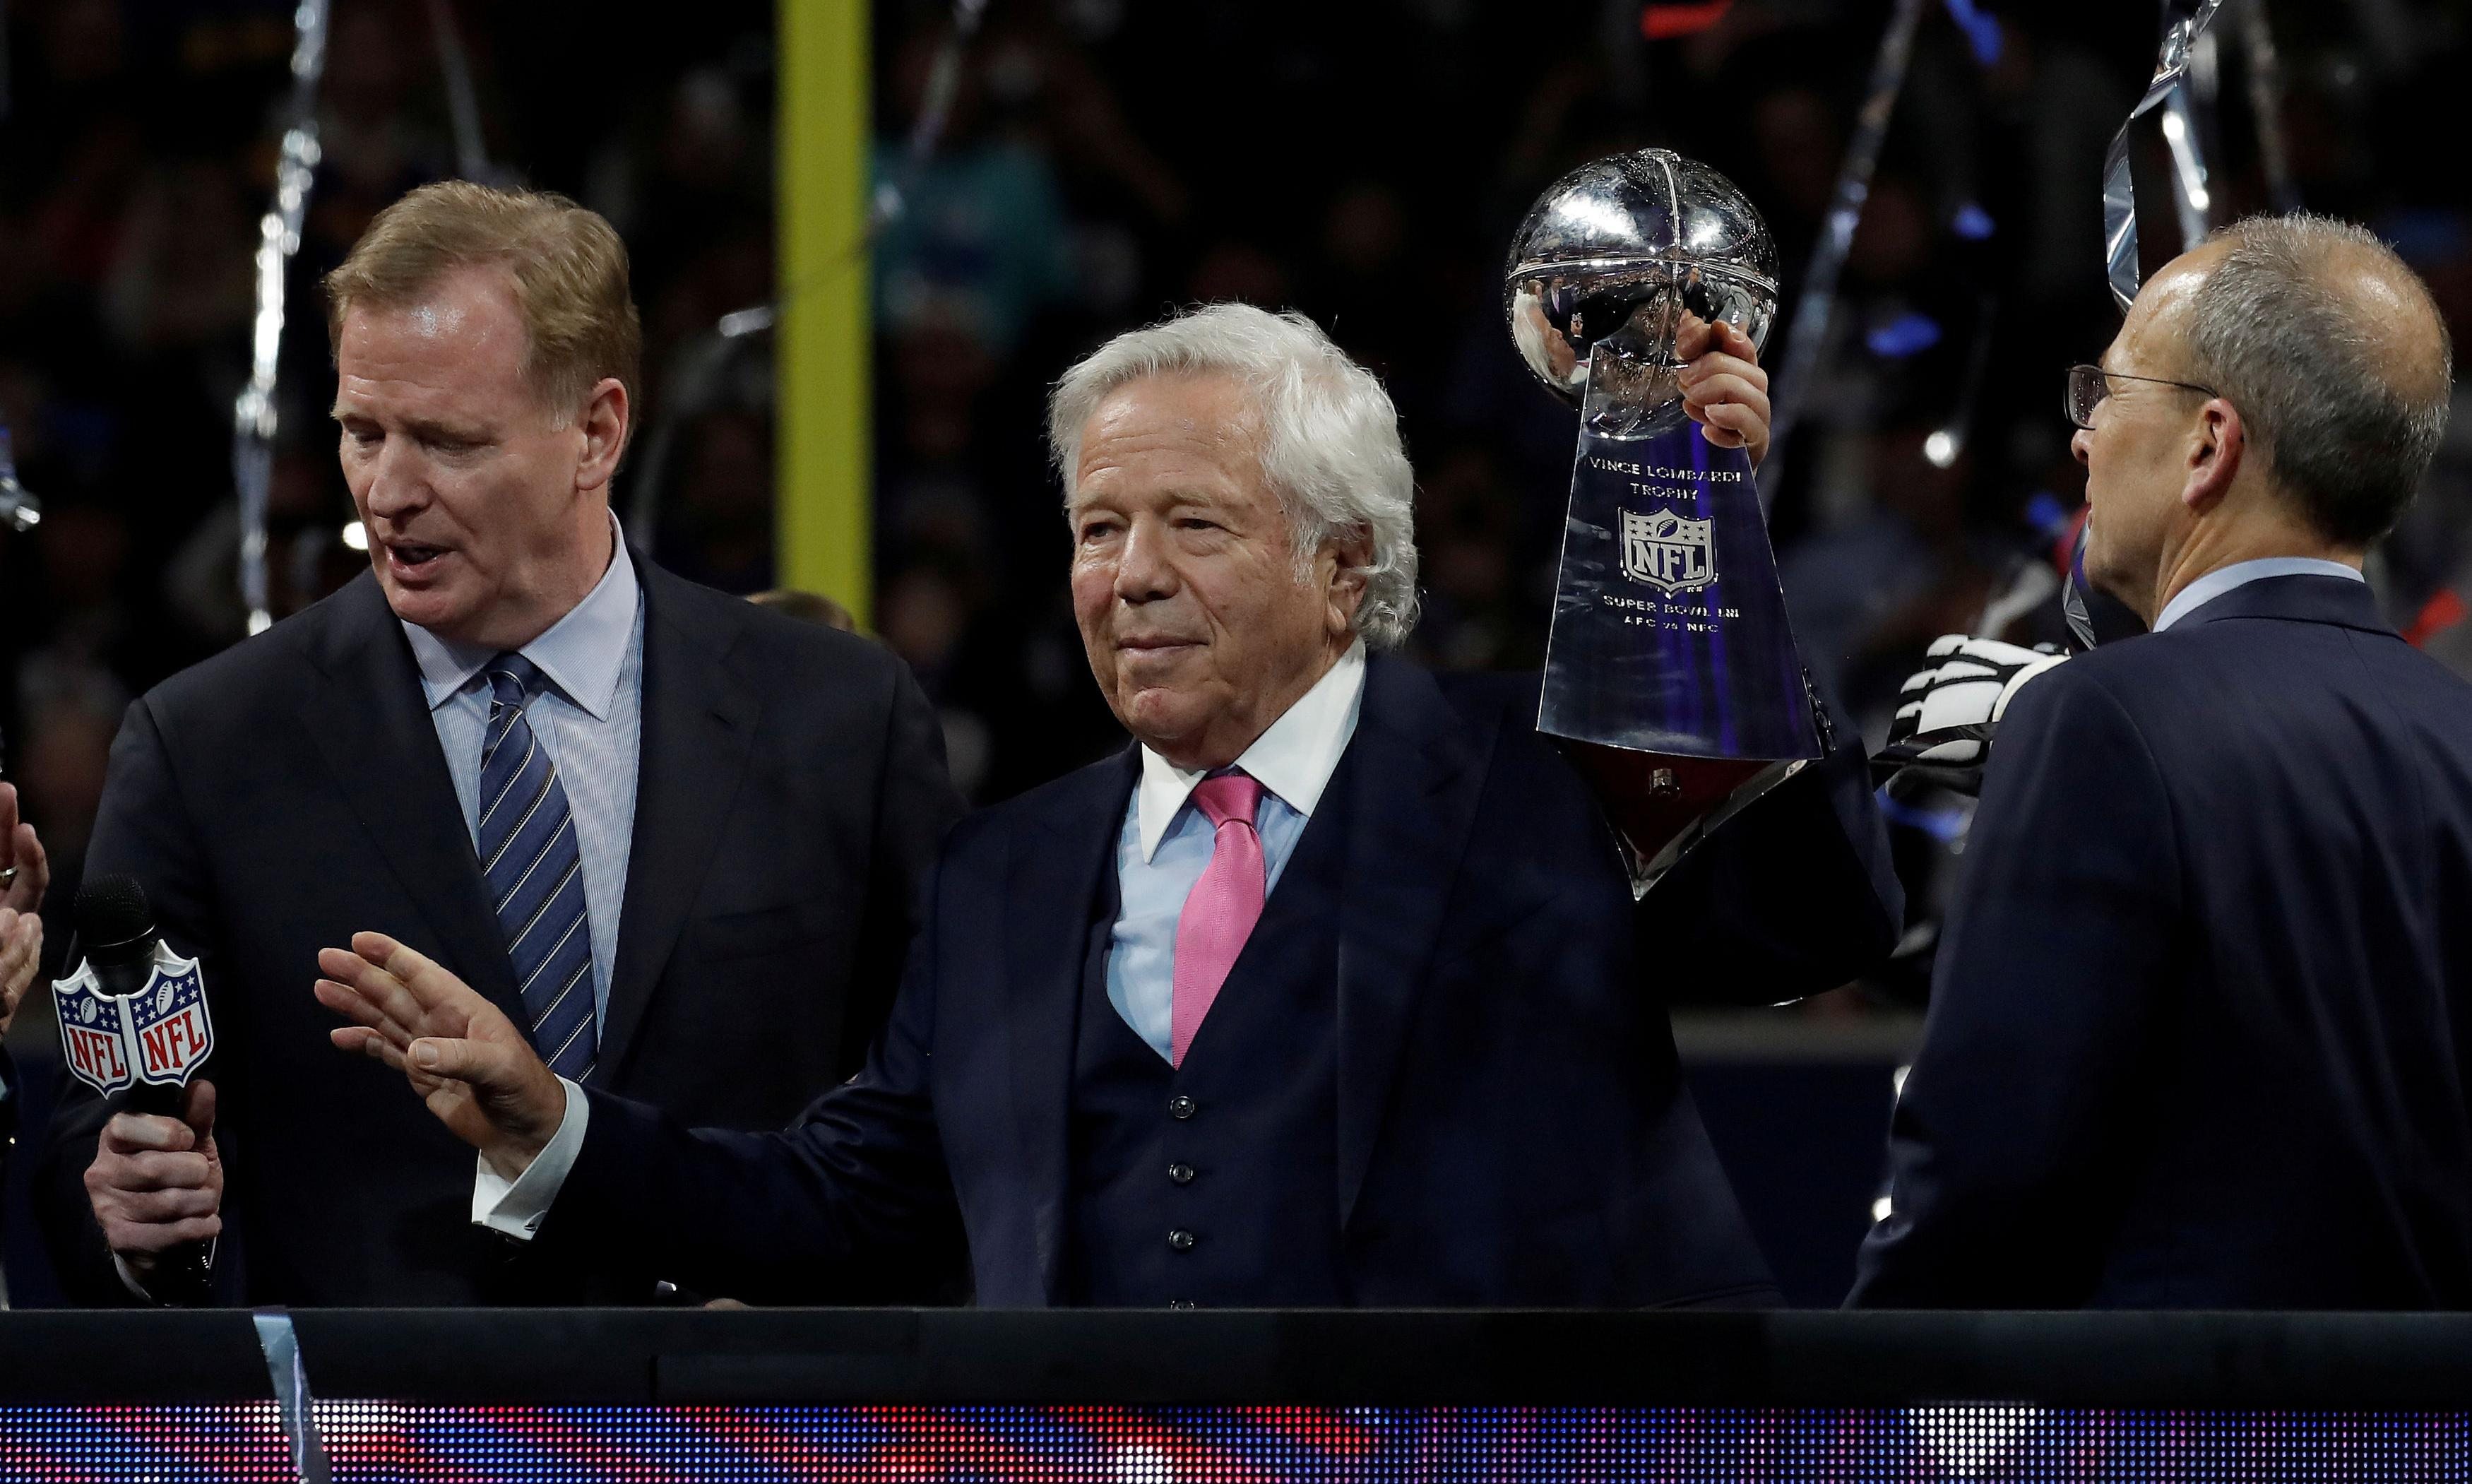 'I am truly sorry': Patriots owner Robert Kraft breaks silence over prostitution bust